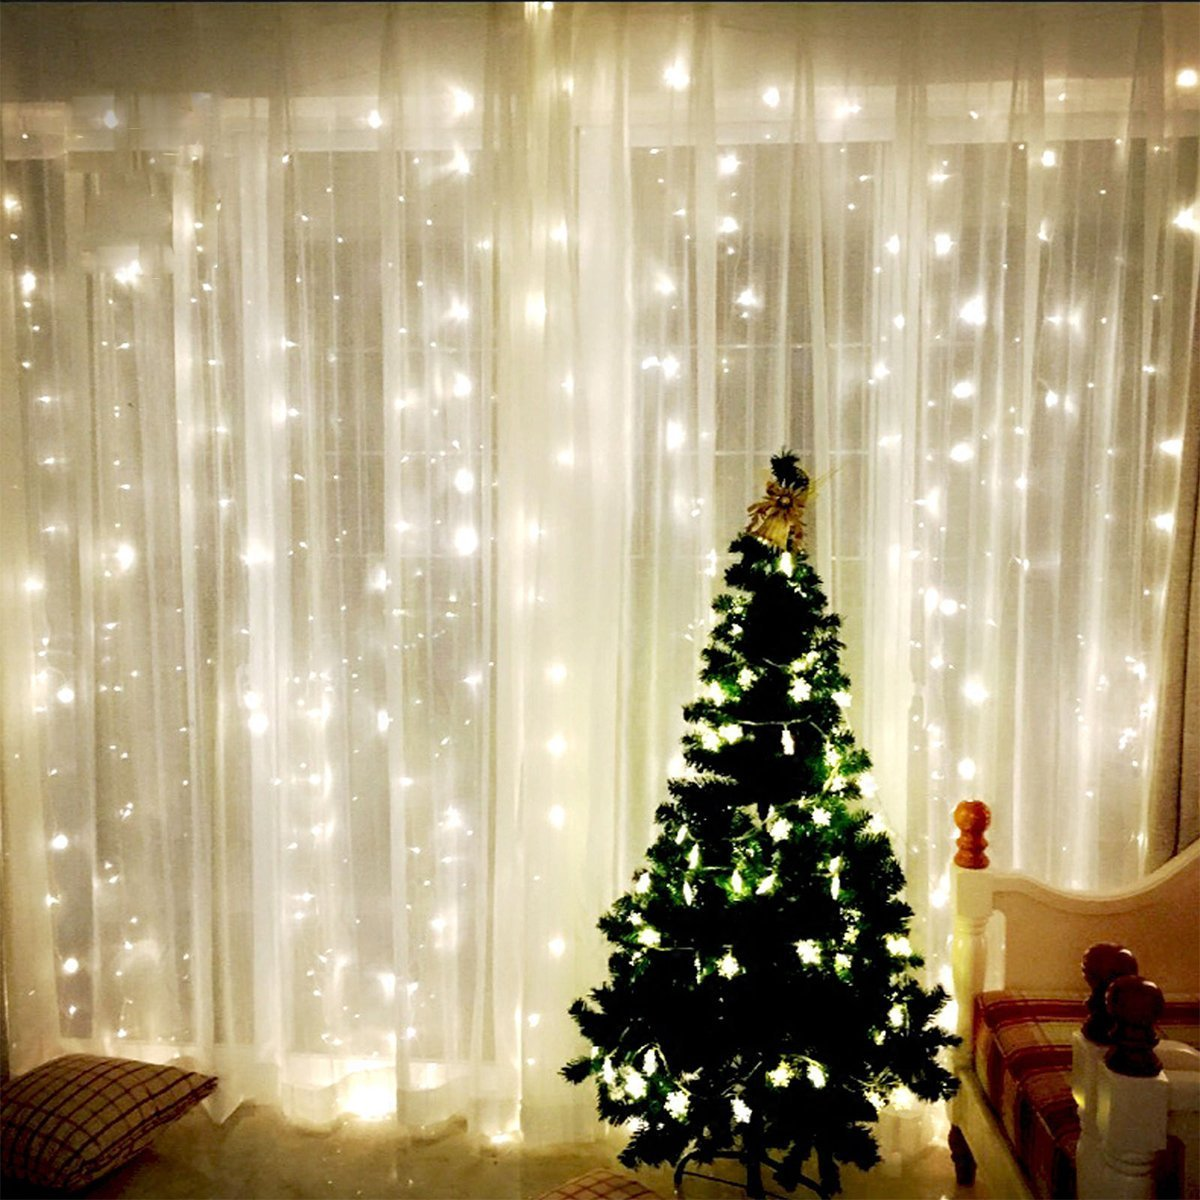 Window Curtain Icicle waterfall Lights 304 LEDS FairyTwinkle Stars ...